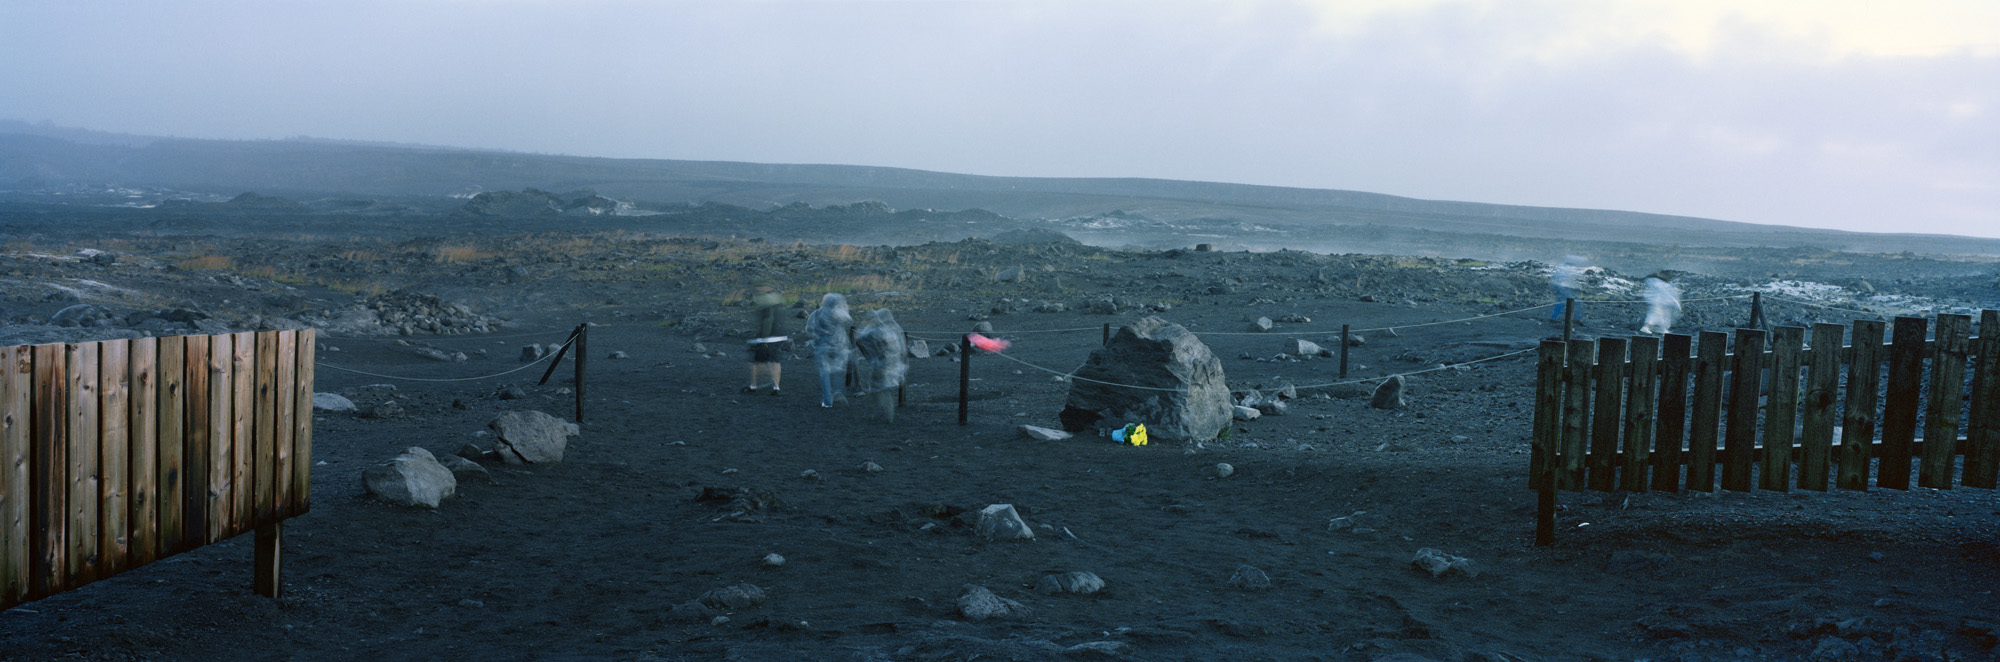 Kilauea Obake, Hale Ma'uma'u Crater, Hawaii Volcanoes National Park, Hawaii, 2007